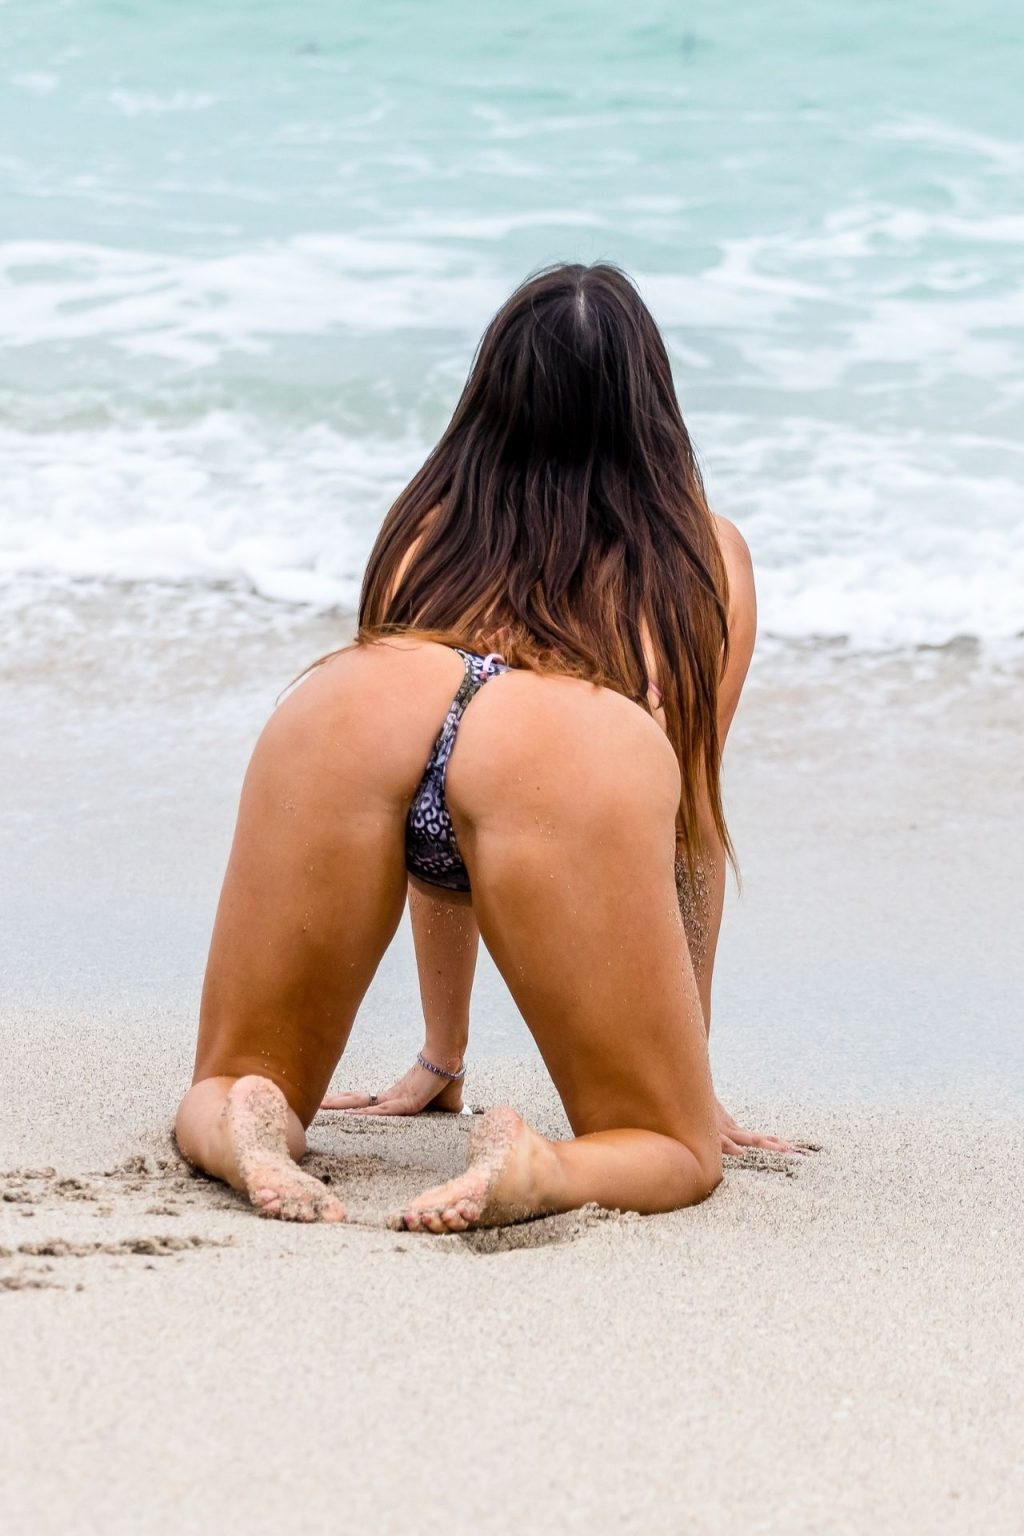 Claudia Romani Shows Off Her Curves in a Mismatched Thong Bikini (30 Photos)